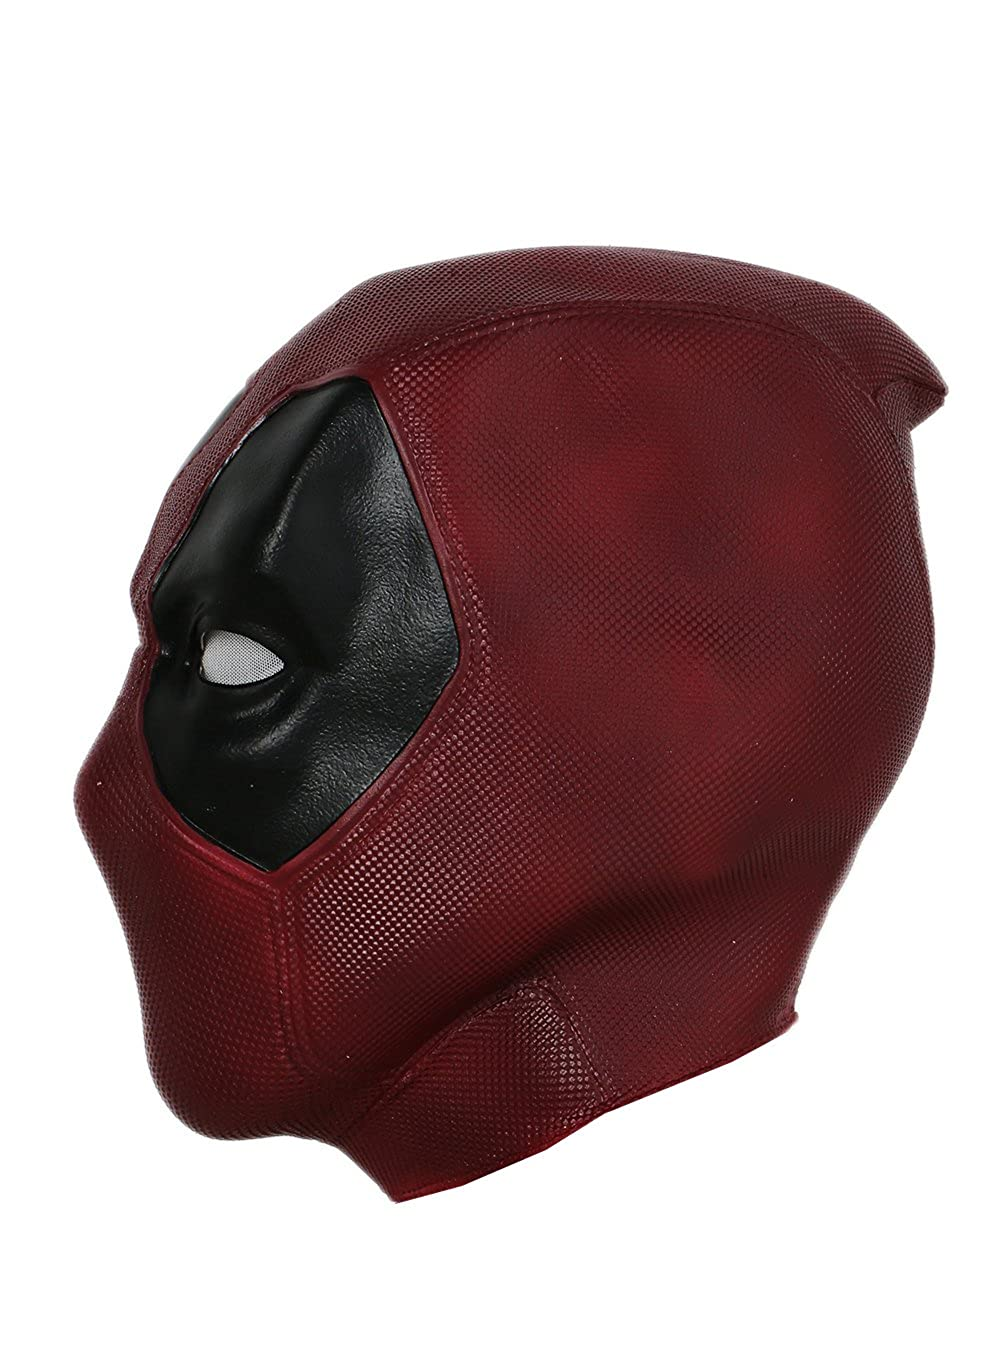 af7ea4da7 Latex 100% brand new cosplay mask. Including  A full head of mask  Head  size  about 60cm. Material  Latex  Made of high-grade latex material